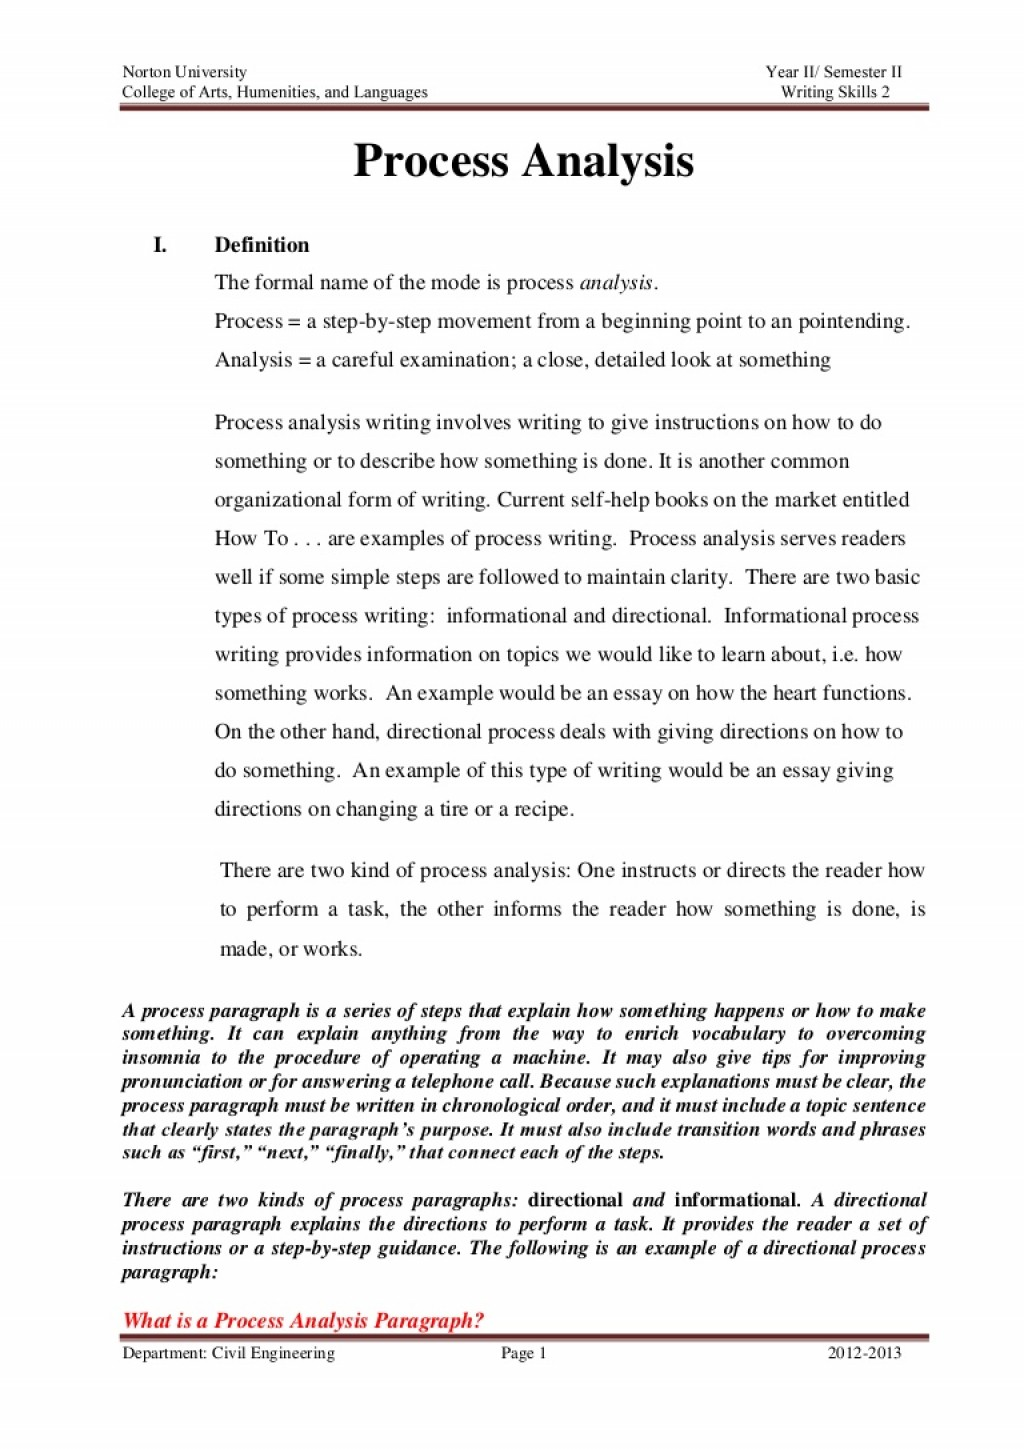 004 Processanalysisassignment Phpapp02 Thumbnail What Is Process Essay Unusual A Complex Good Analysis Topic Description Large